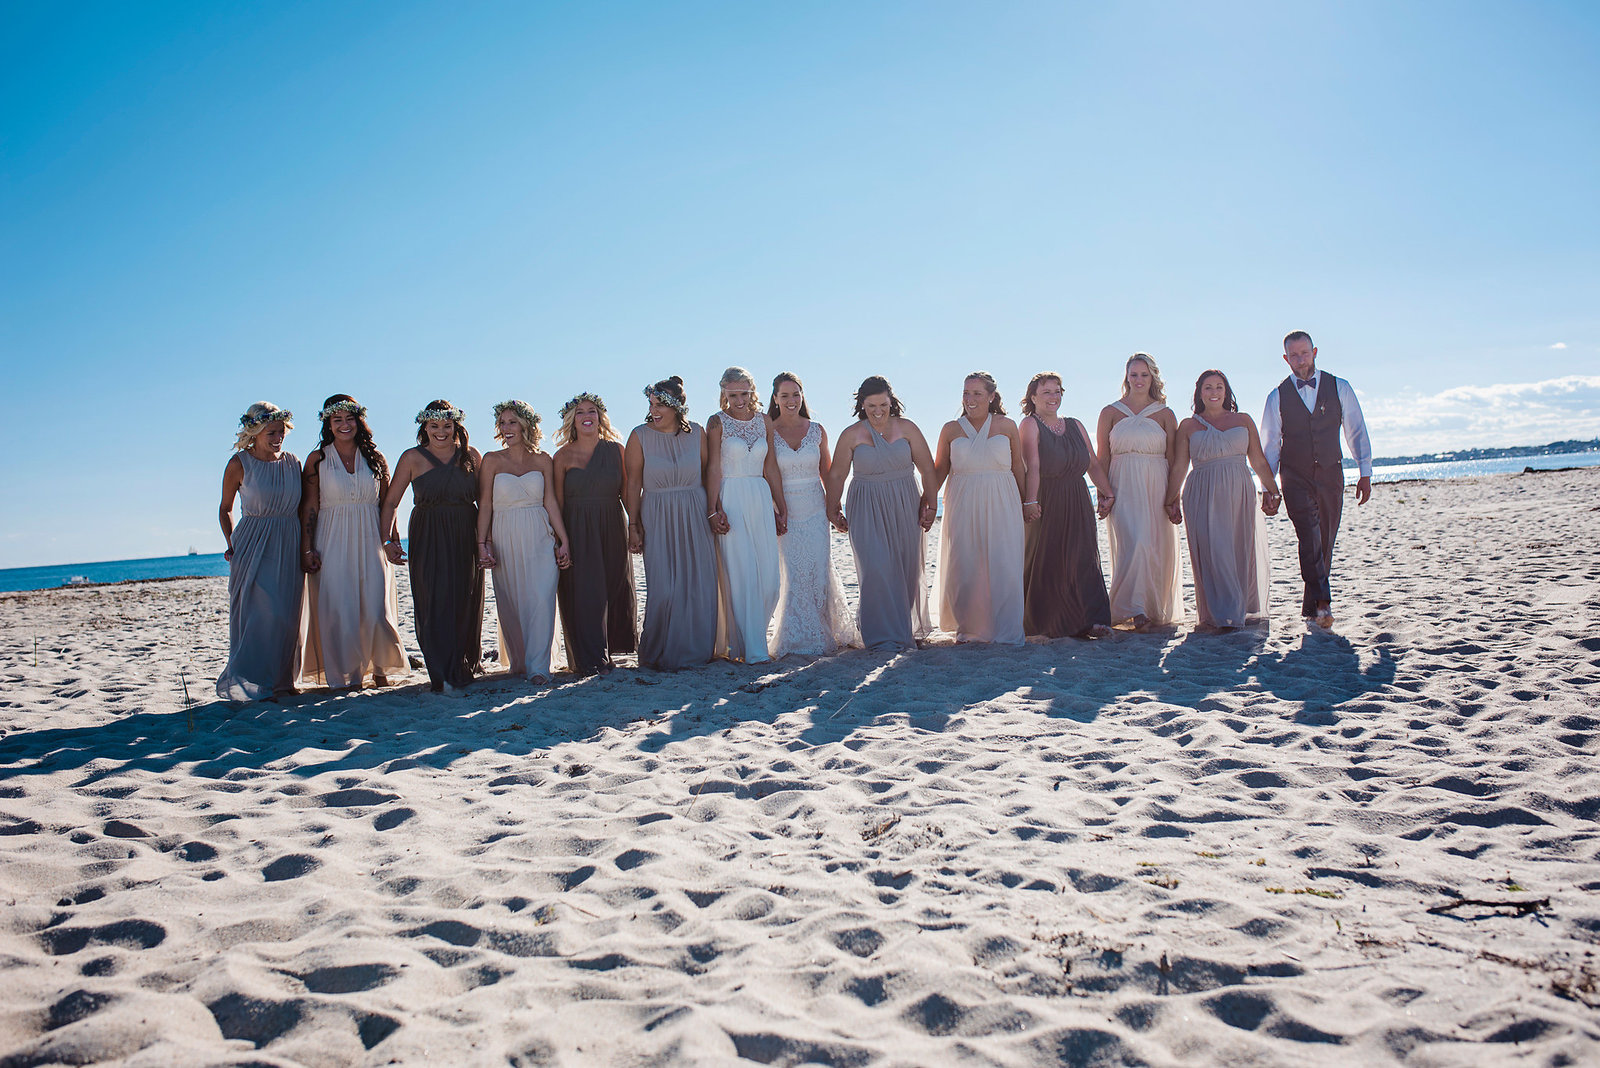 bridal party on beach, Cape Cod wedding, same sex wedding, two brides, bridesmaids with floral crowns